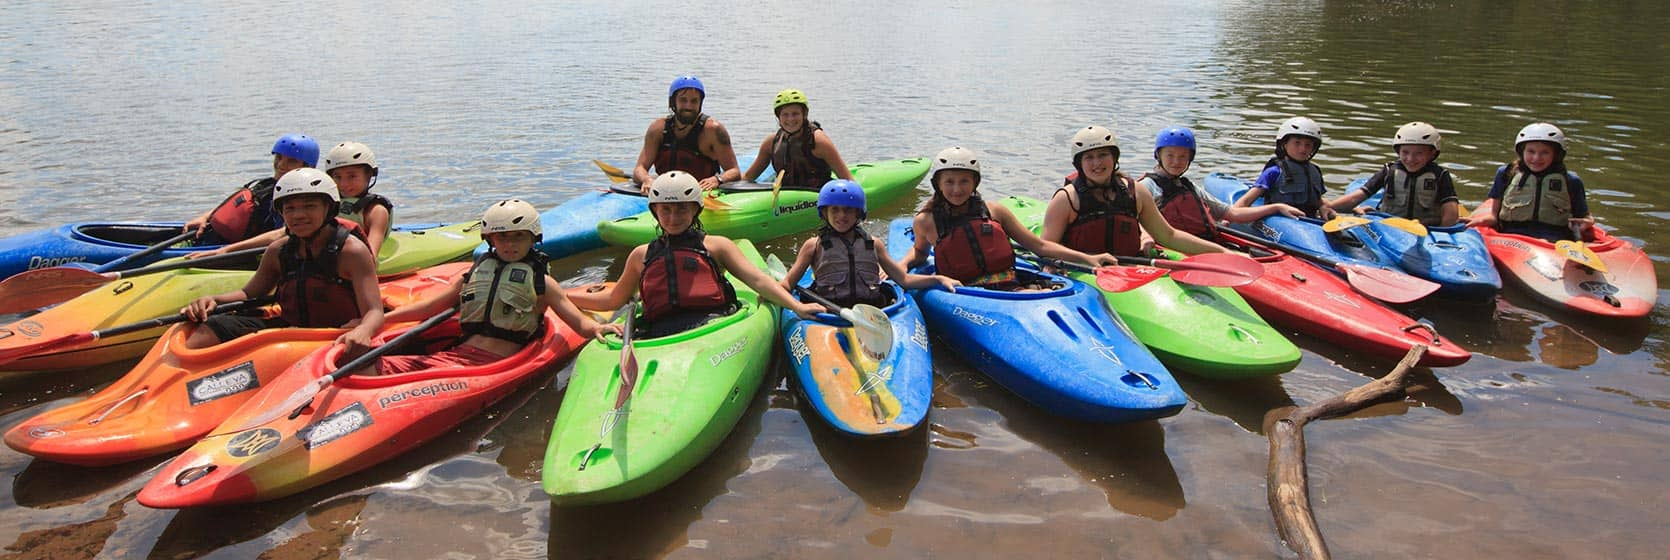 Youth Kayaking Class L Potomac River L Washington Dc